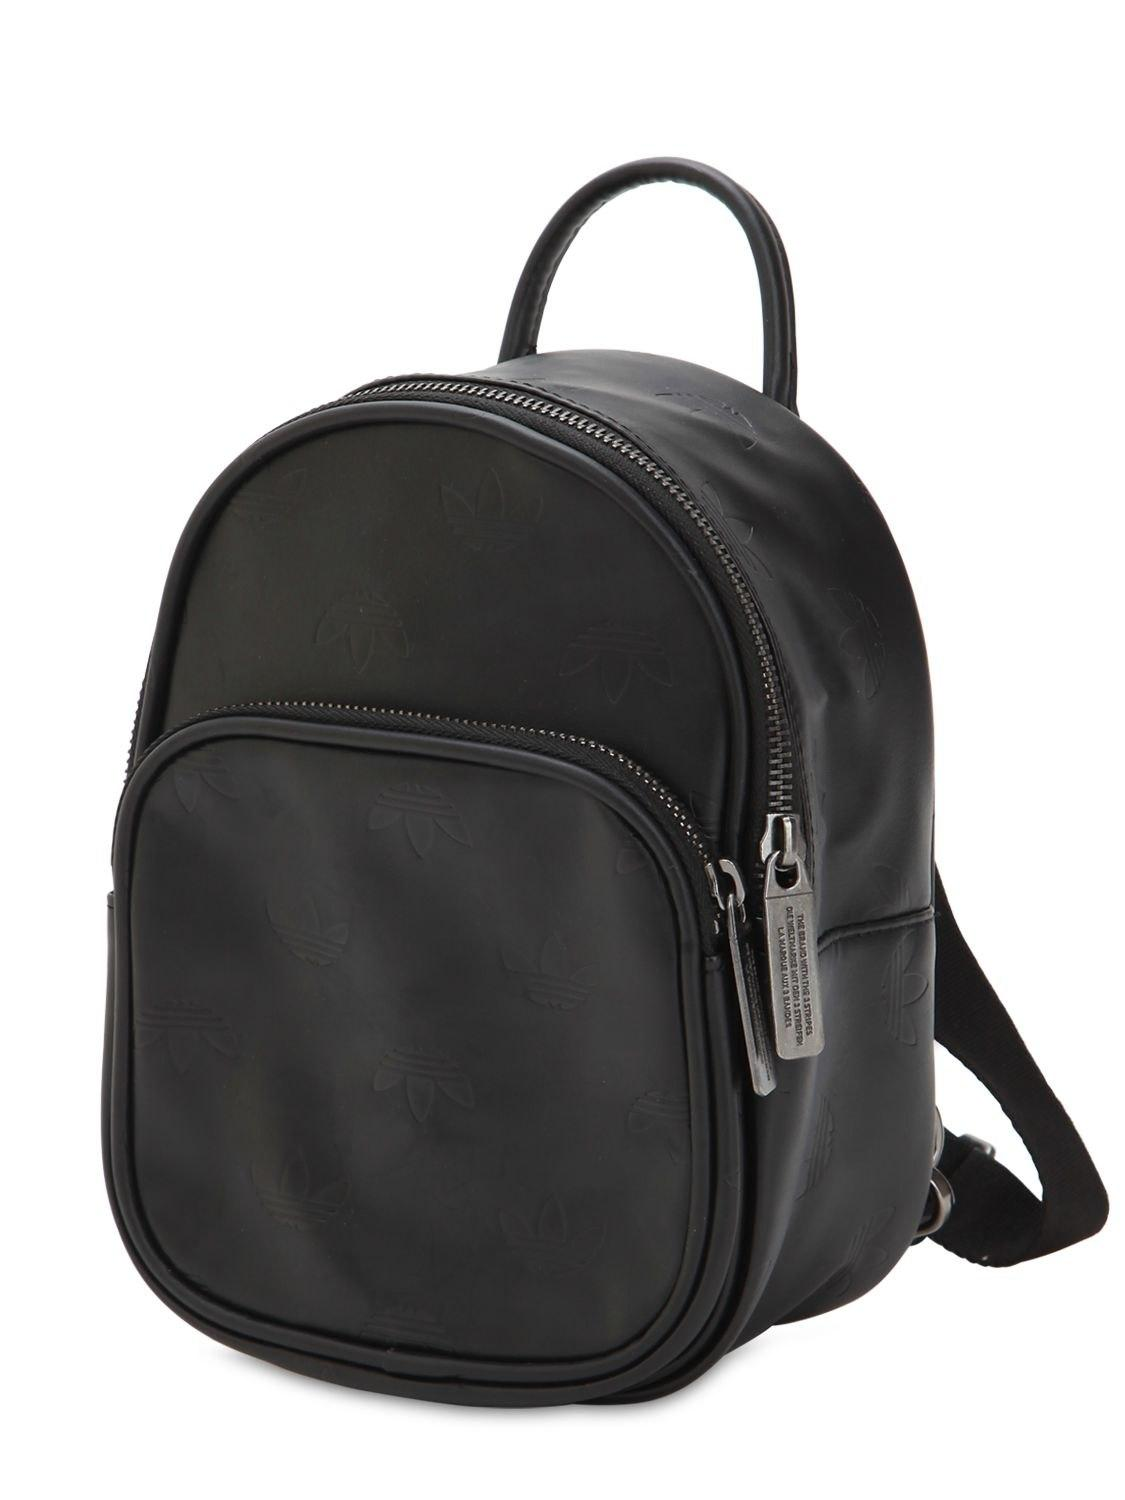 0716e12707 Lyst - adidas Originals Mini Classic X Faux Leather Backpack in Black